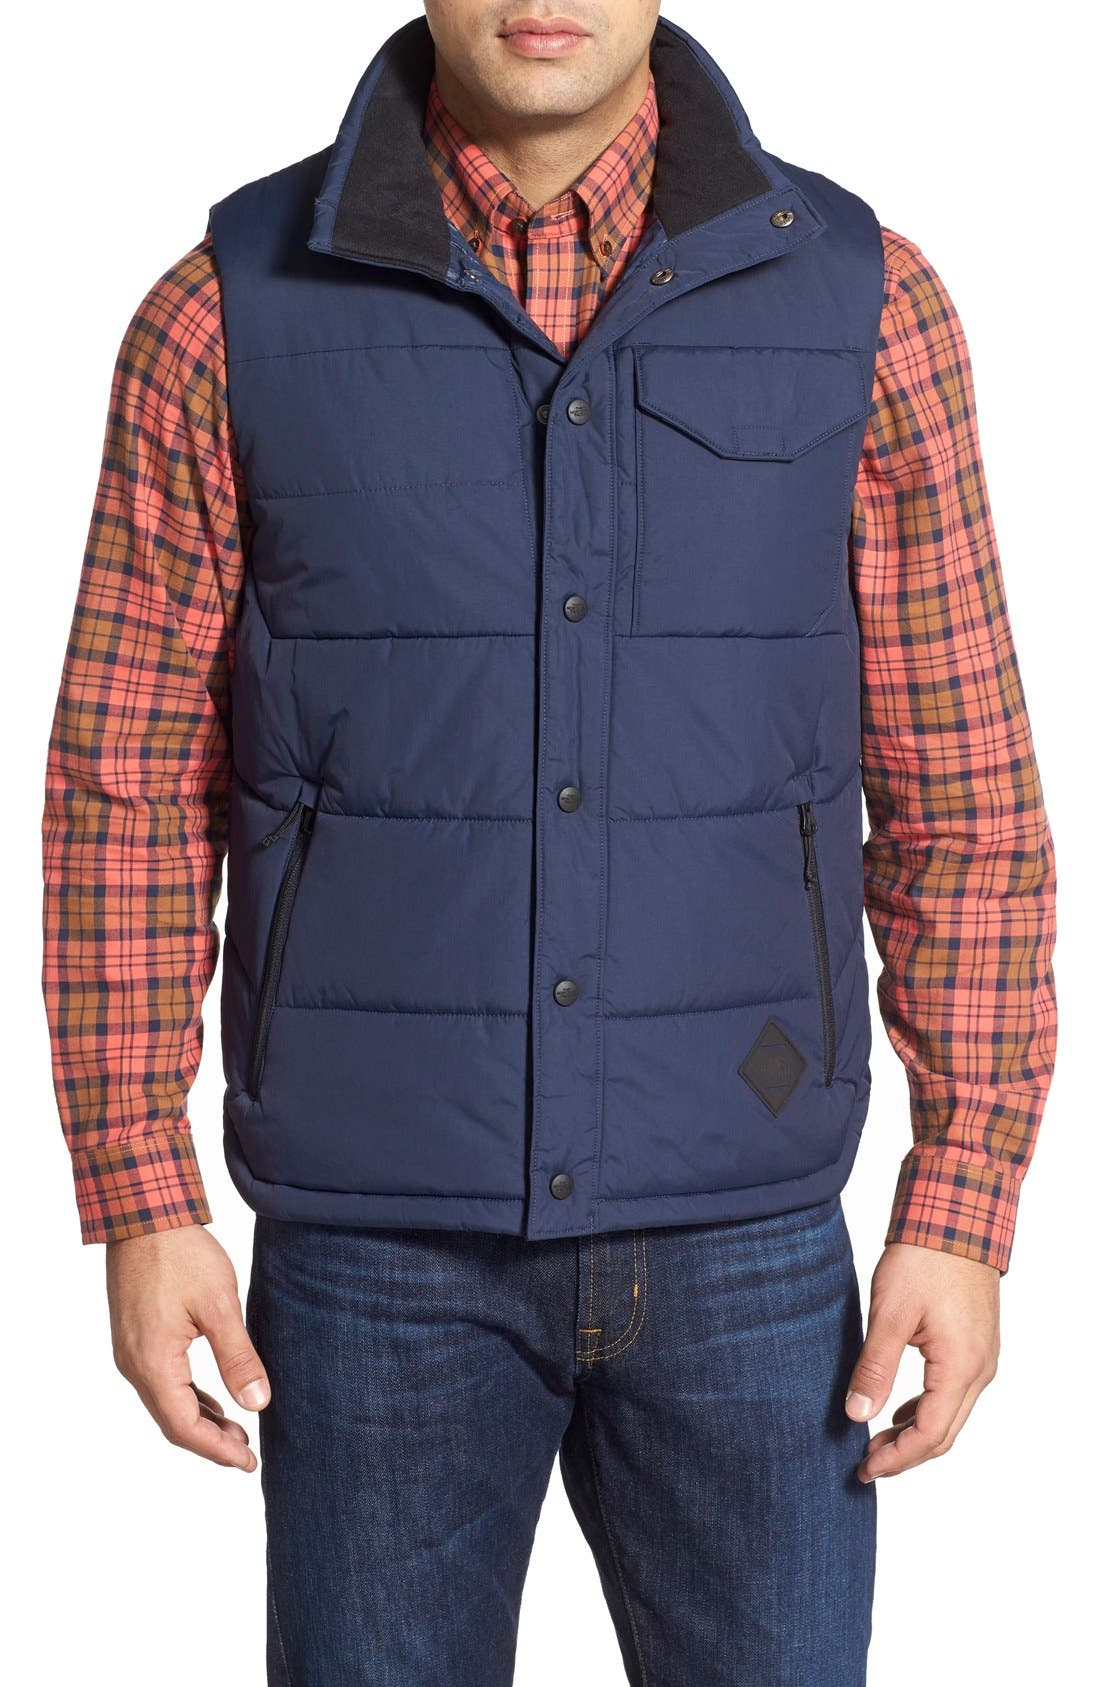 'Patrick's Point' Quilted Vest,                             Main thumbnail 1, color,                             Urban Navy